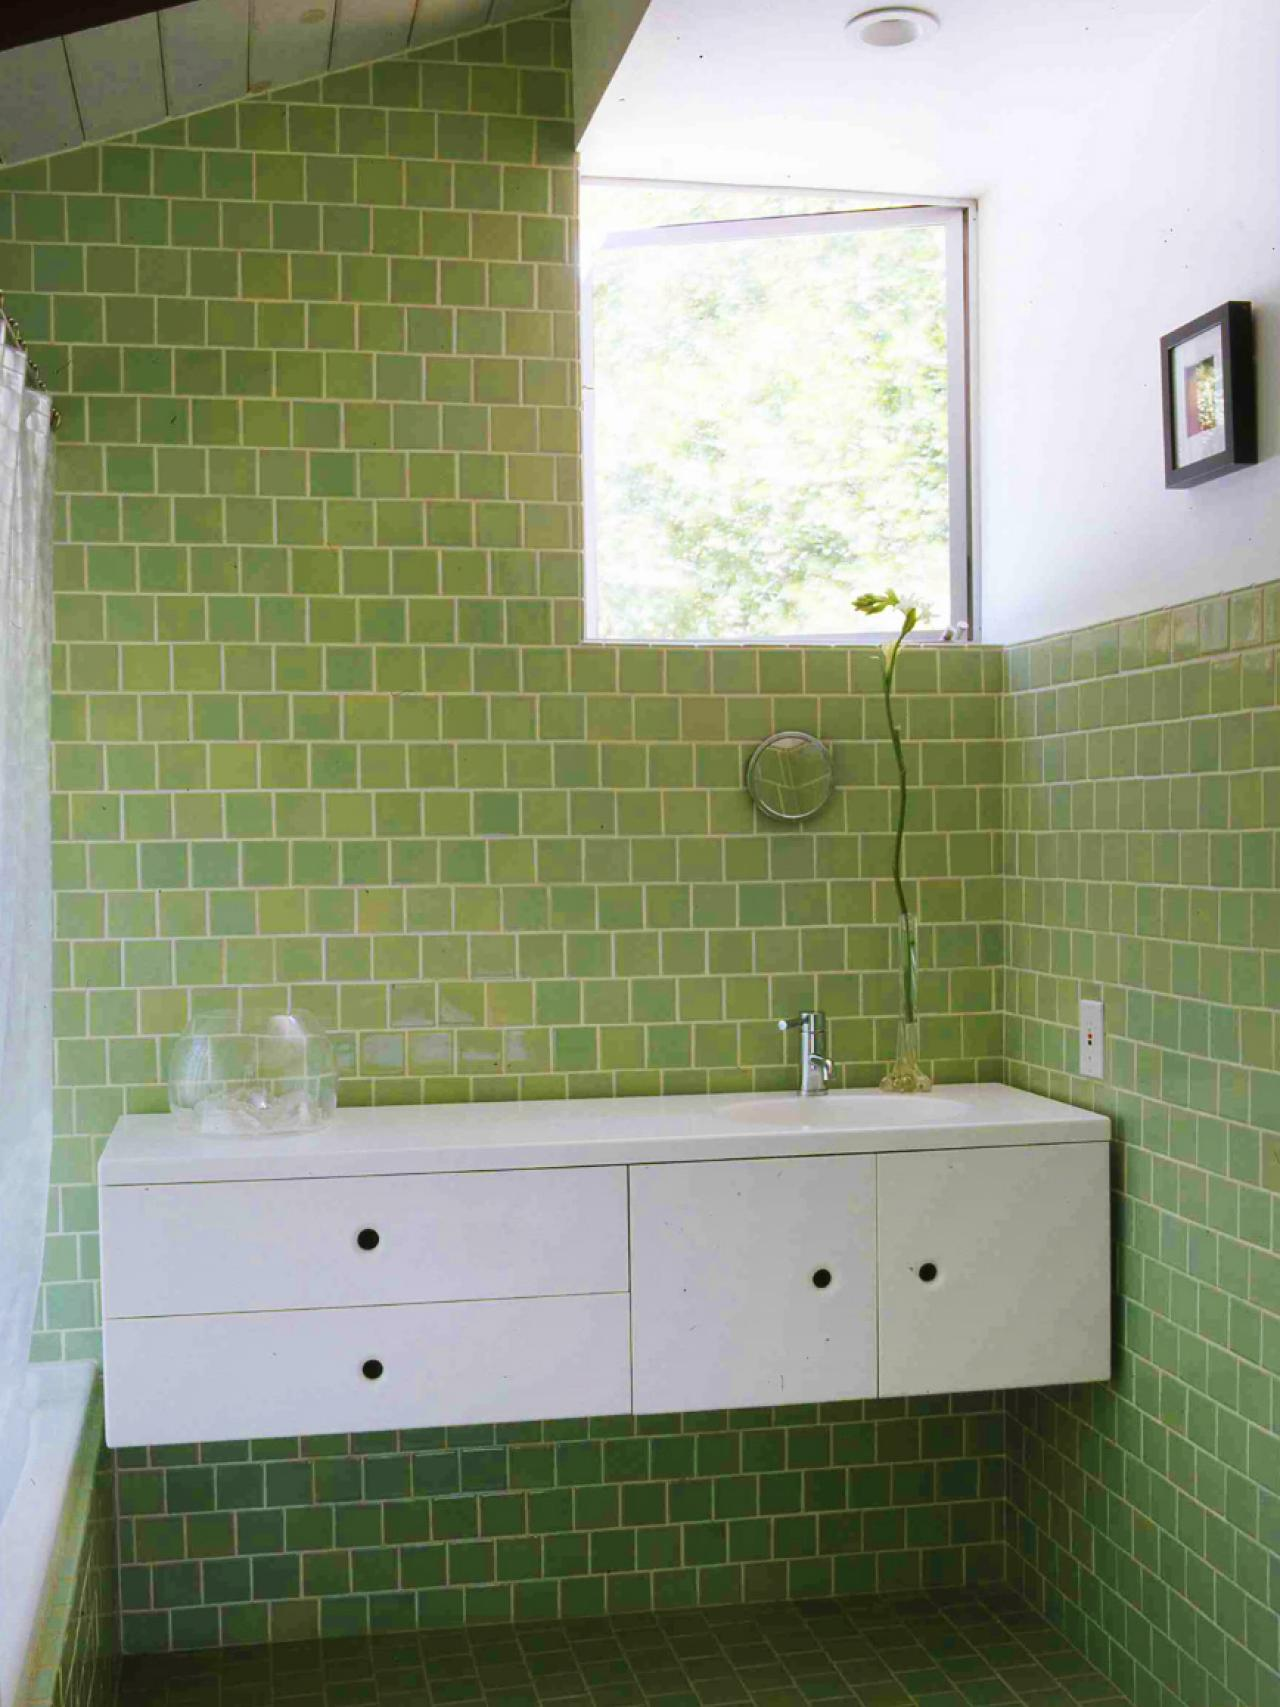 15 simply chic bathroom tile design ideas bathroom ideas Different design and colors of tiles